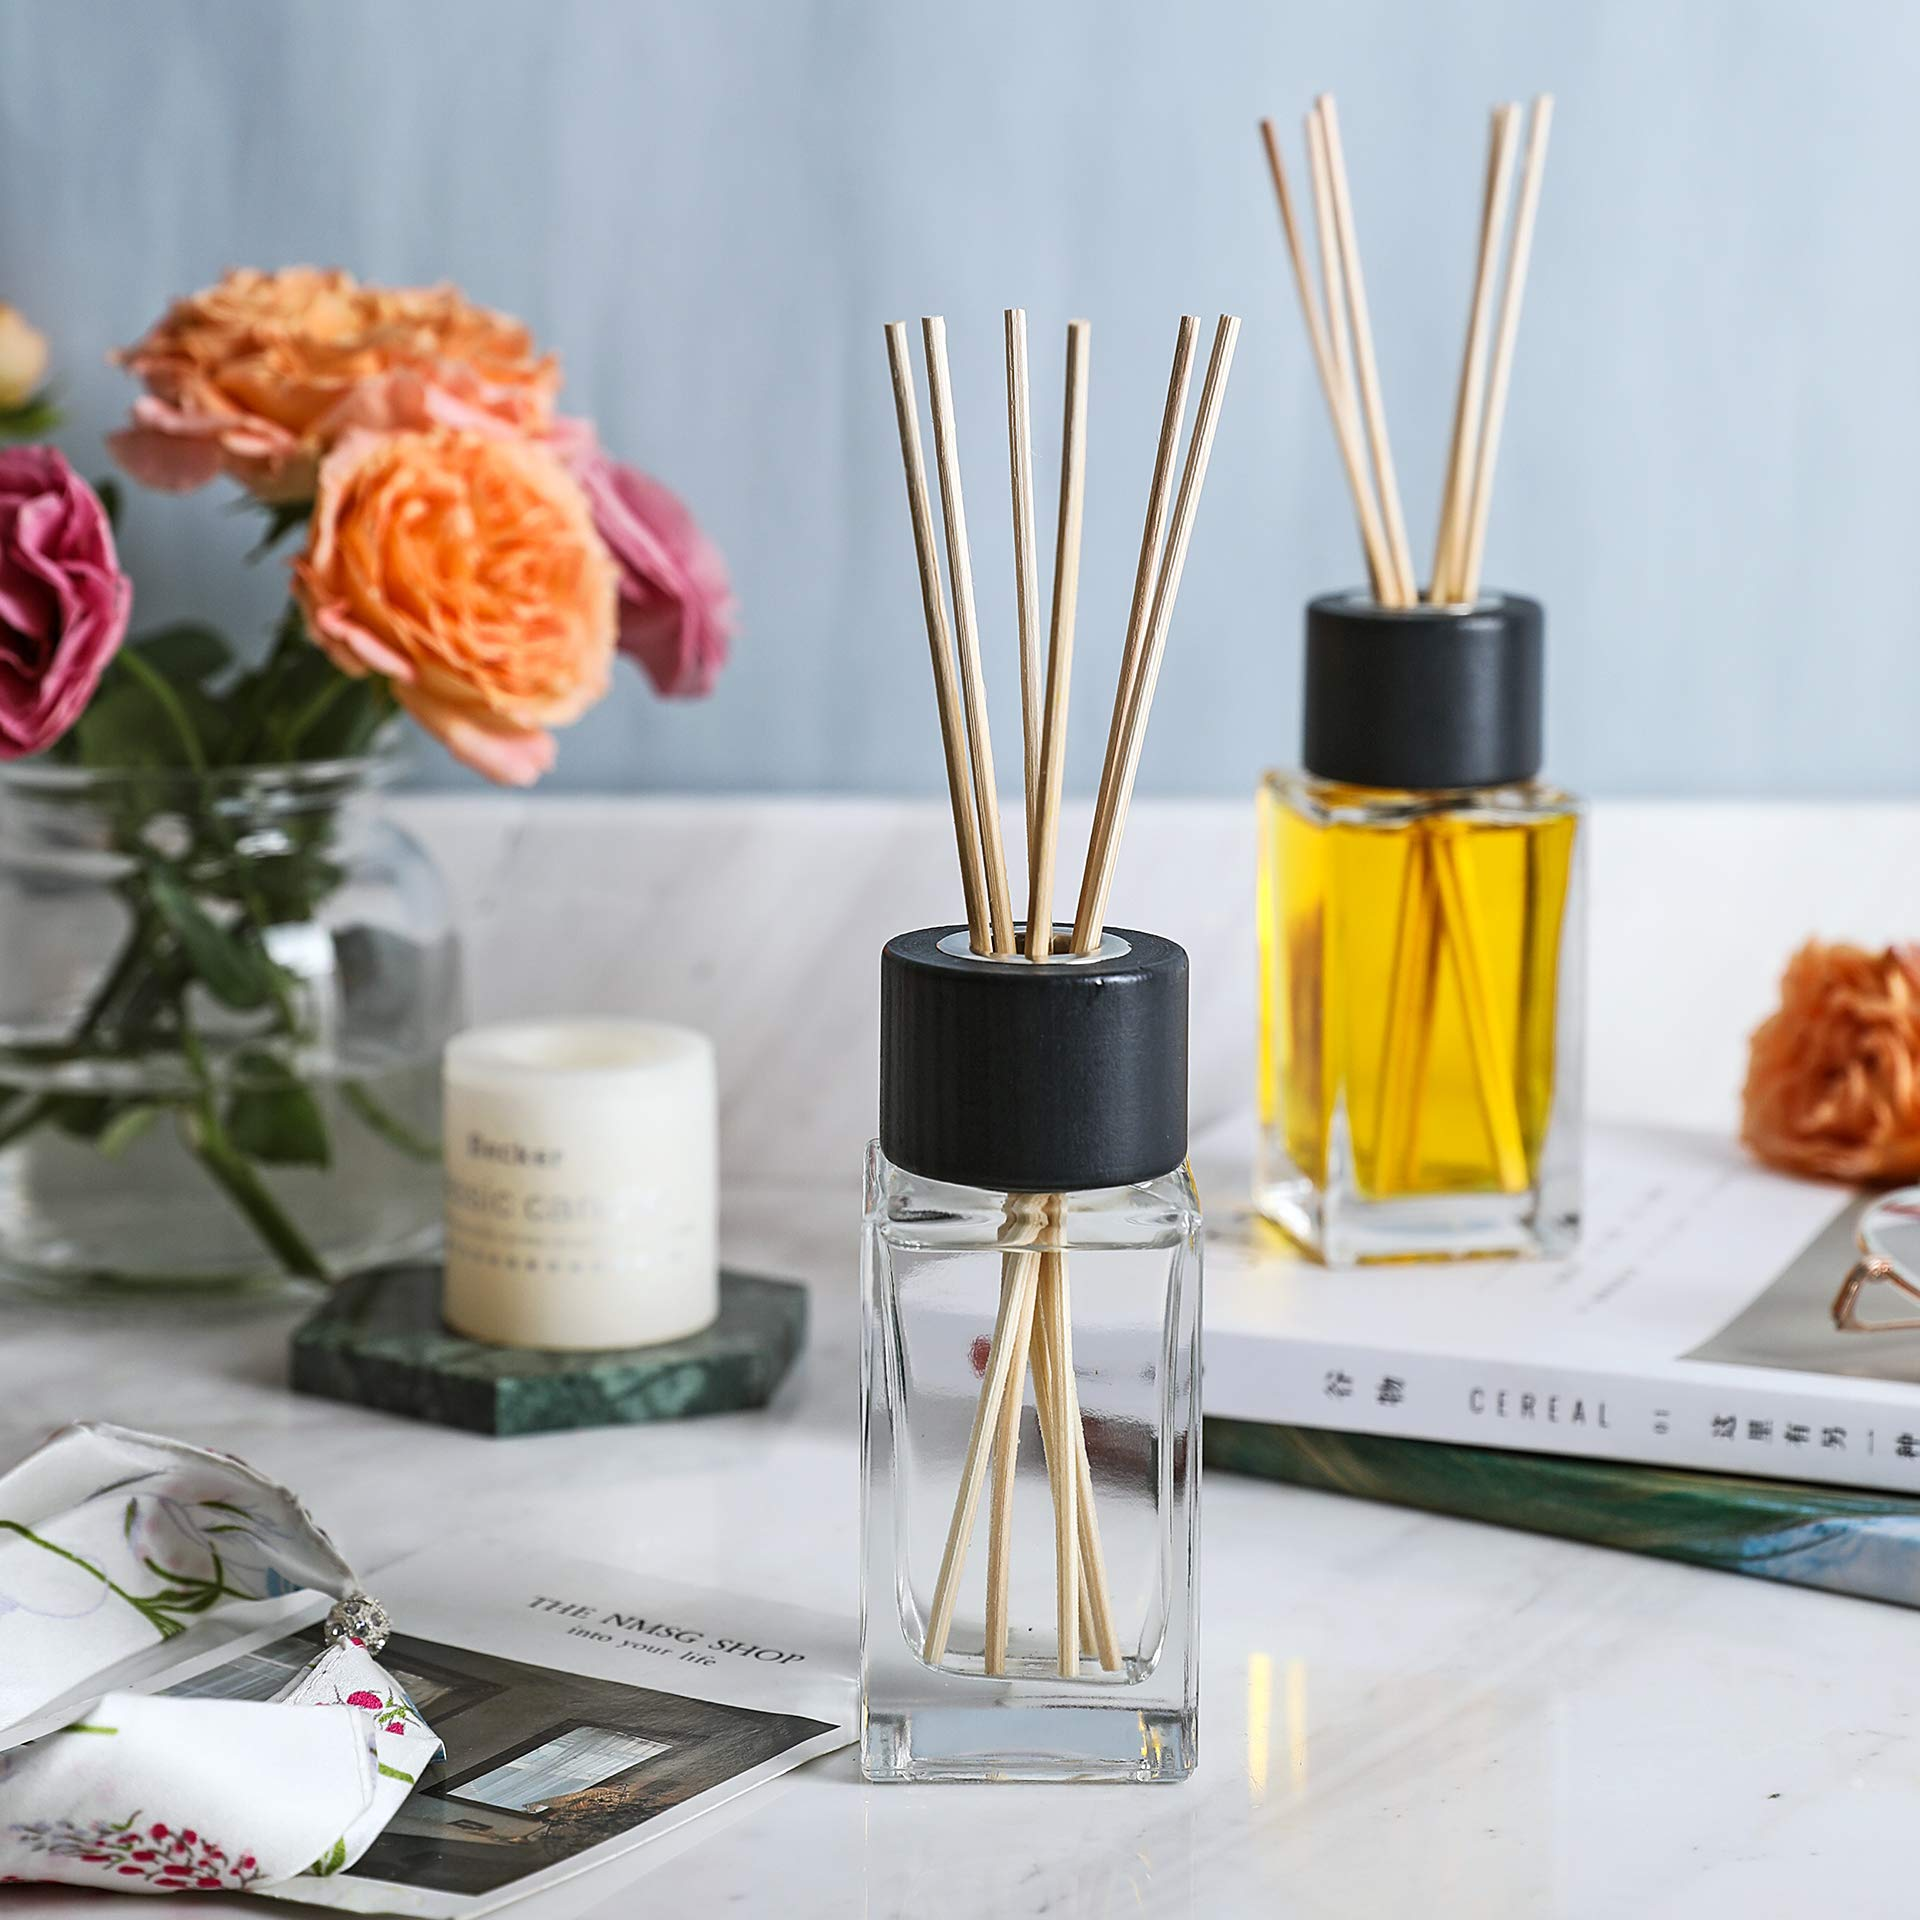 Whole Housewares 100ML 3.4Ounce Clear Glass Diffuser Bottles with 24pcs Natural Reed Sticks, 4.7'' H Square Diffuser Bottle with Black Wood Caps, Set of 4 by Whole Housewares (Image #3)